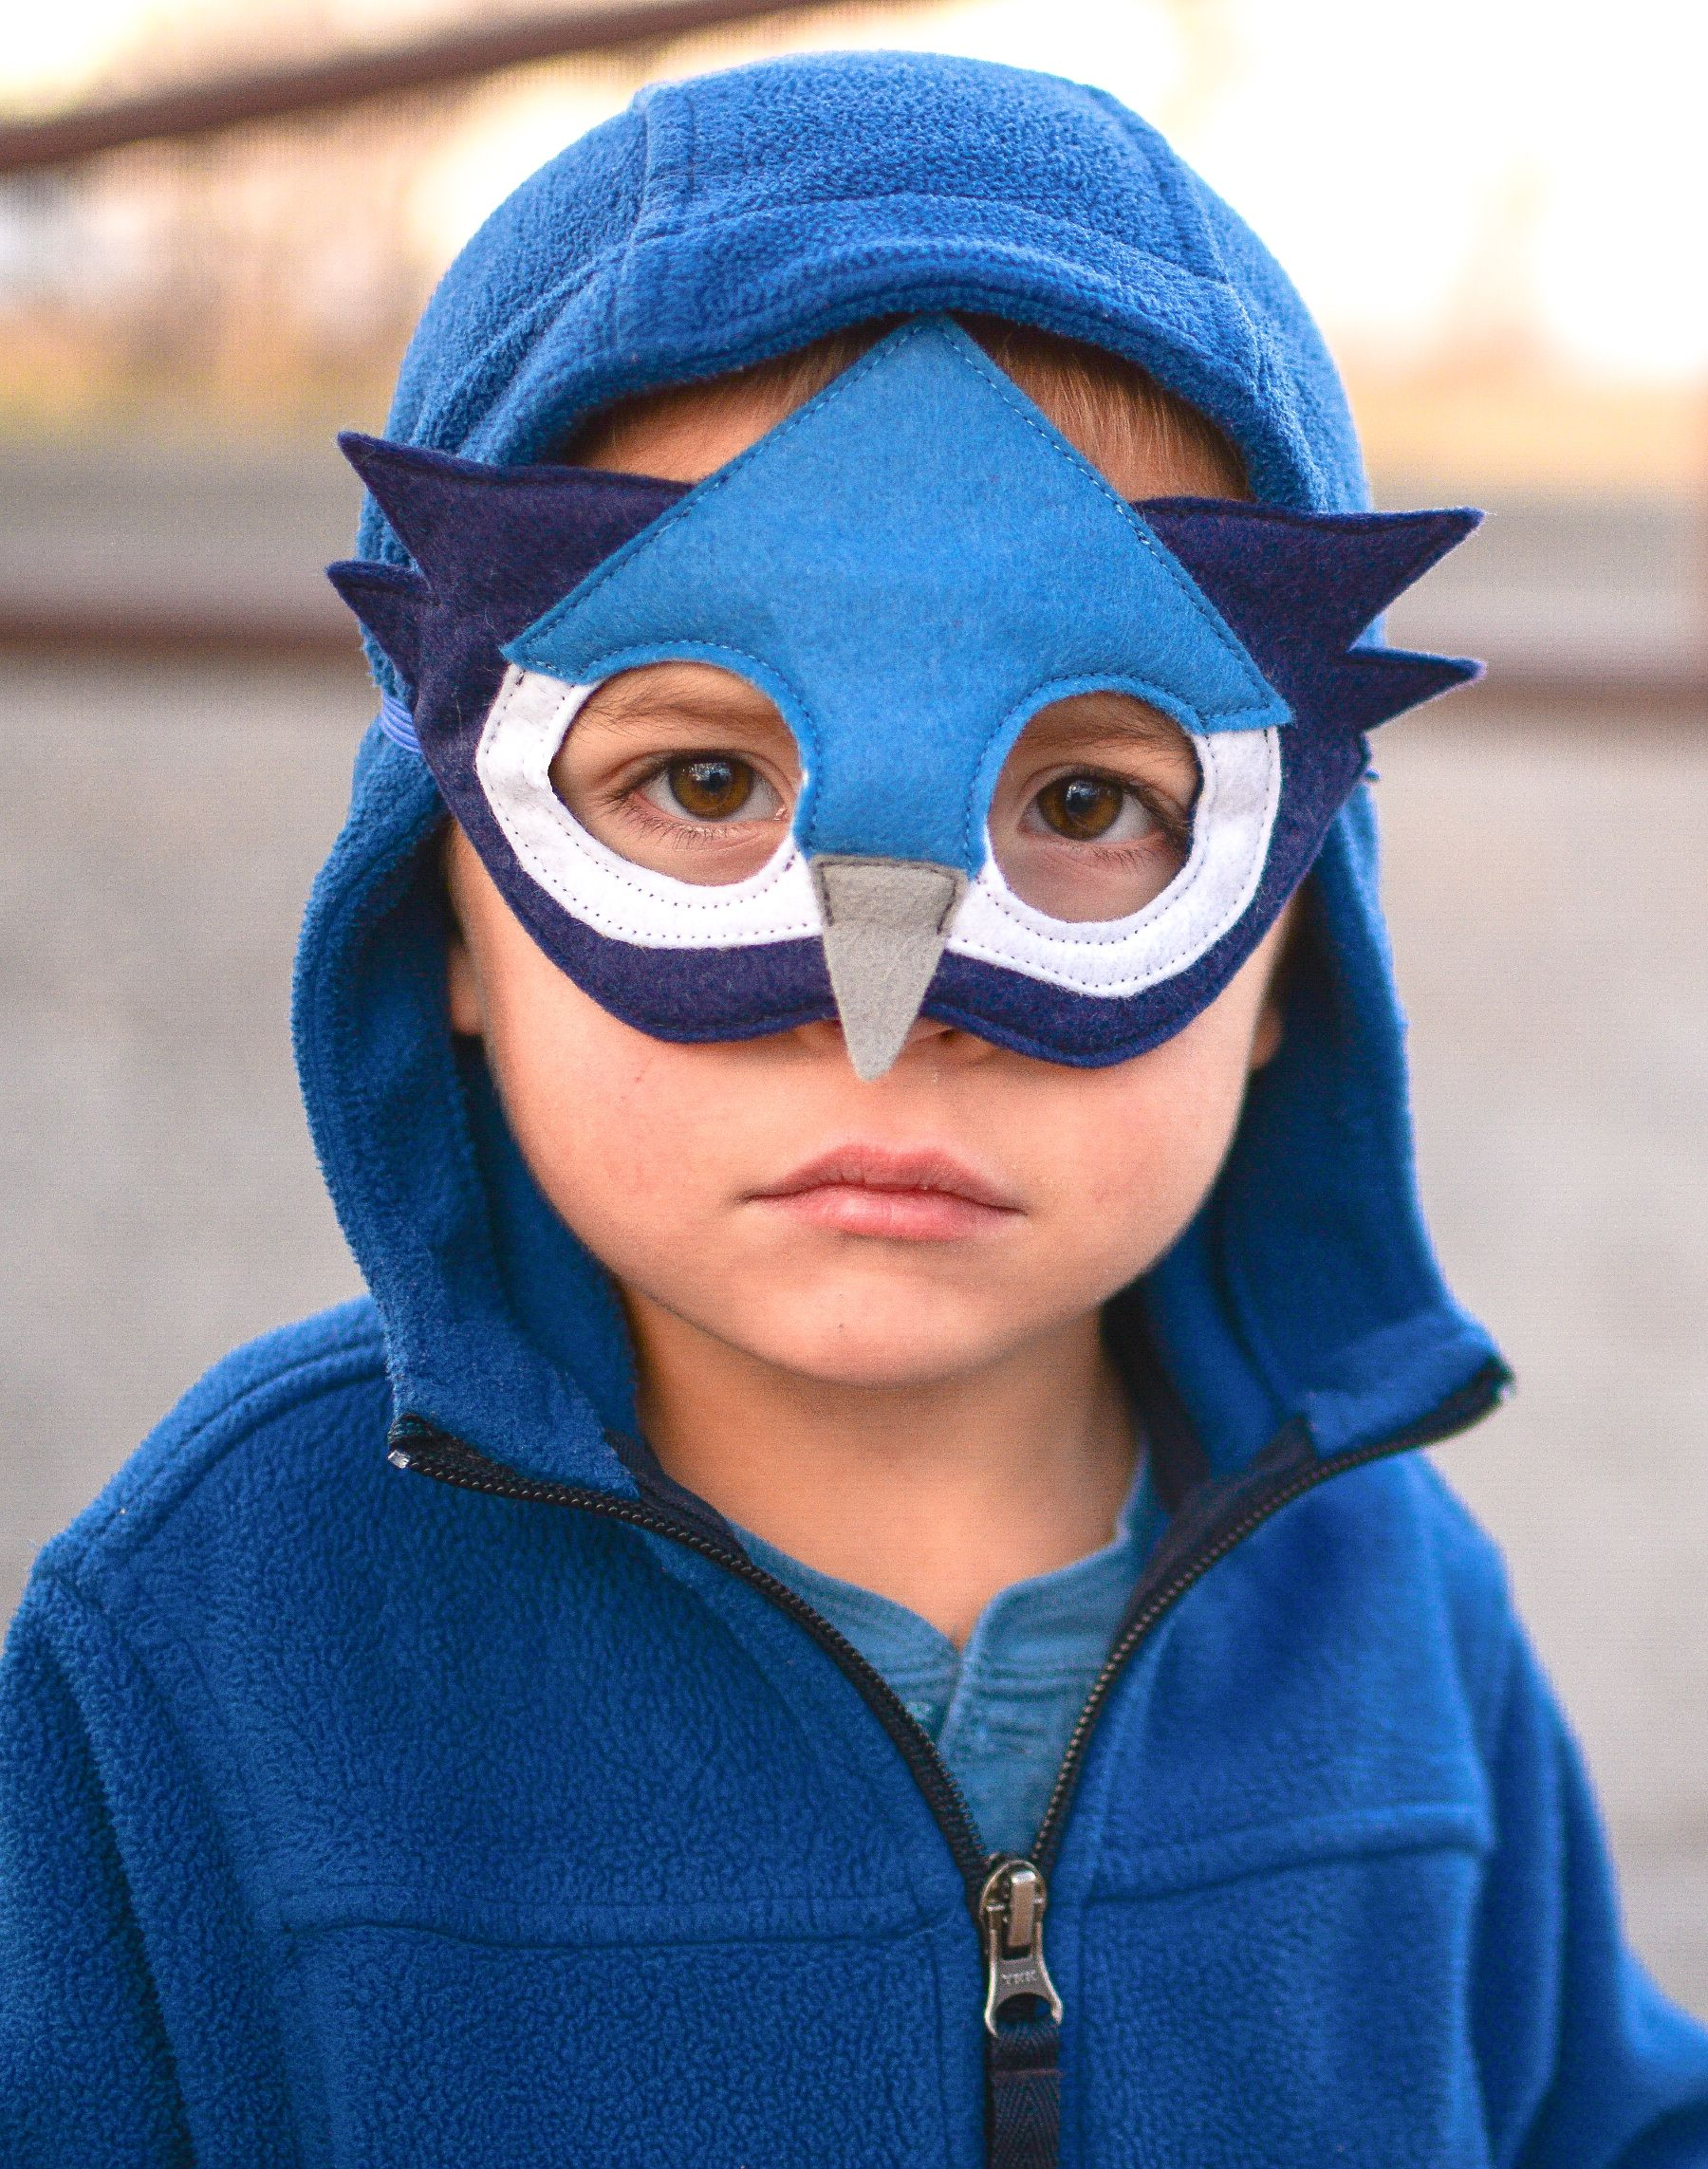 8558a3951a1c Blue jay dress up mask for boys and girls. Kids  Halloween or Carrival  costume accessory to dress up as a blue bird.